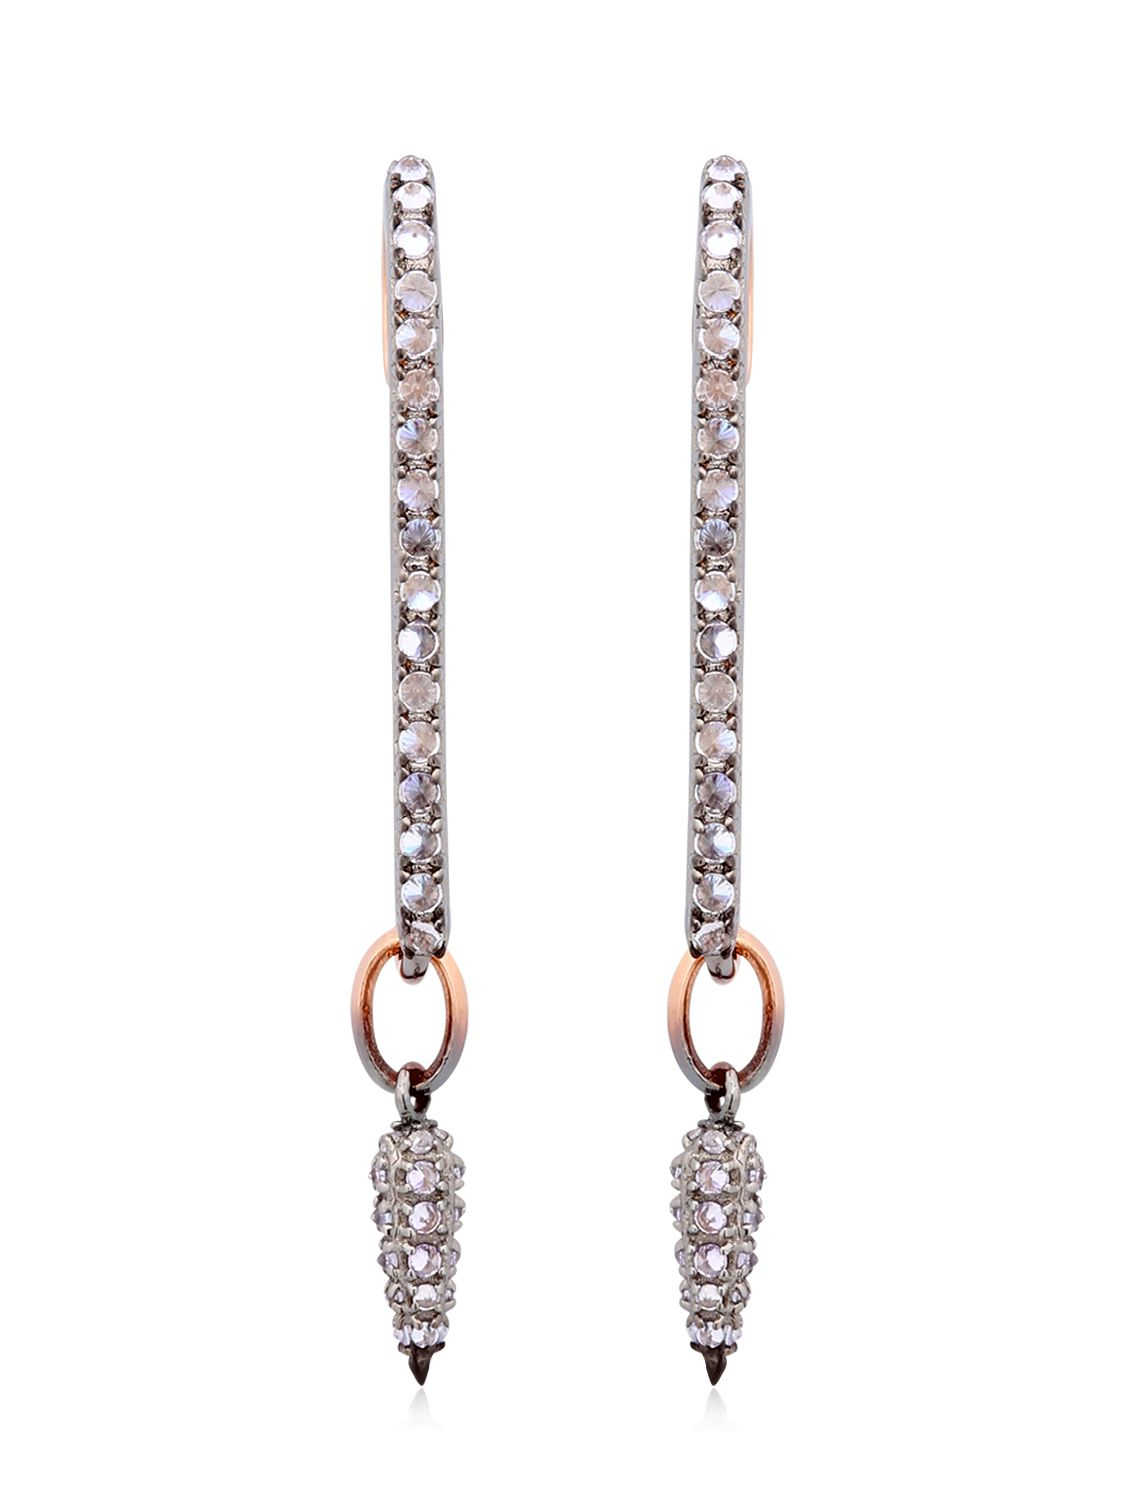 Katie Rowland Safety Pin Drop Earrings In Silver Pink